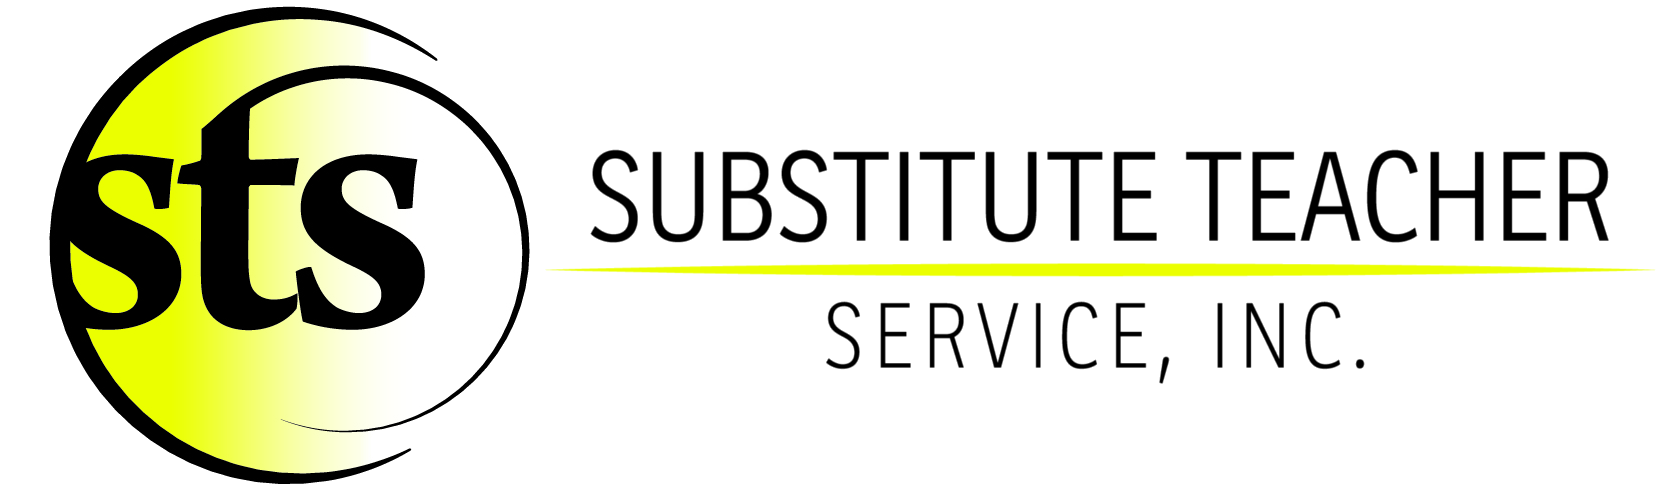 Home Substitute Teacher Service Inc